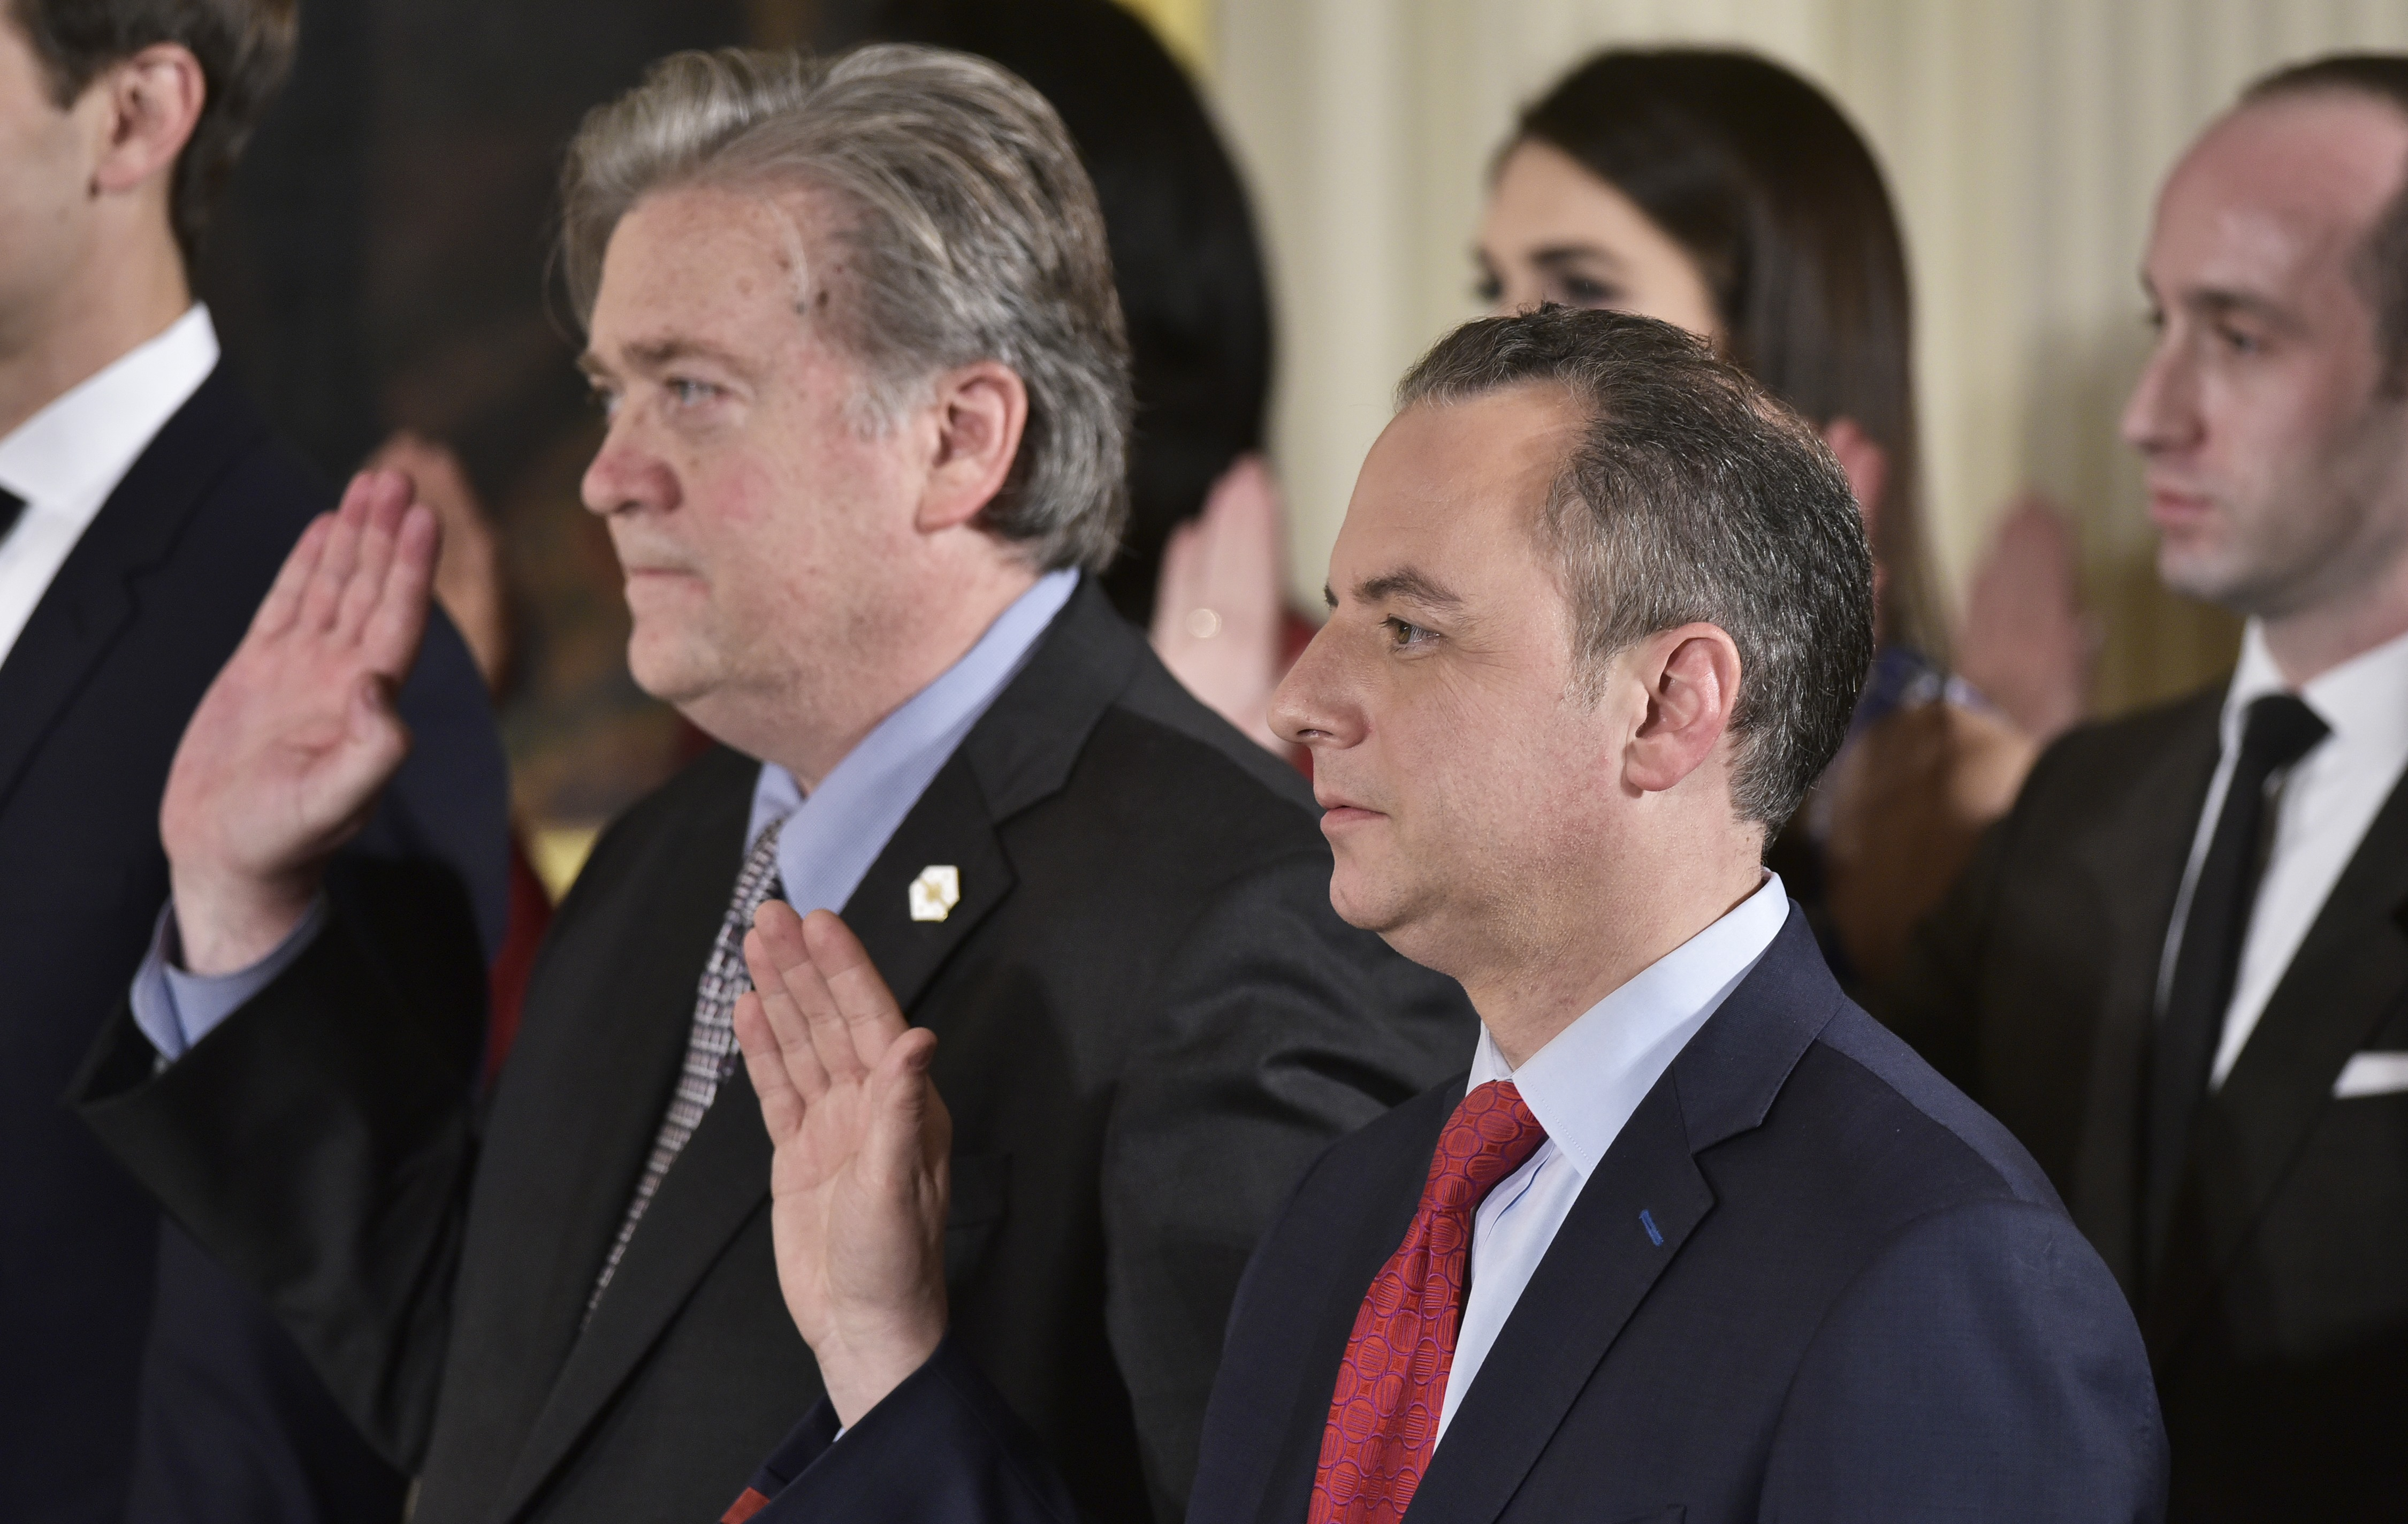 A new Breitbart article reveals much about the war inside the White House